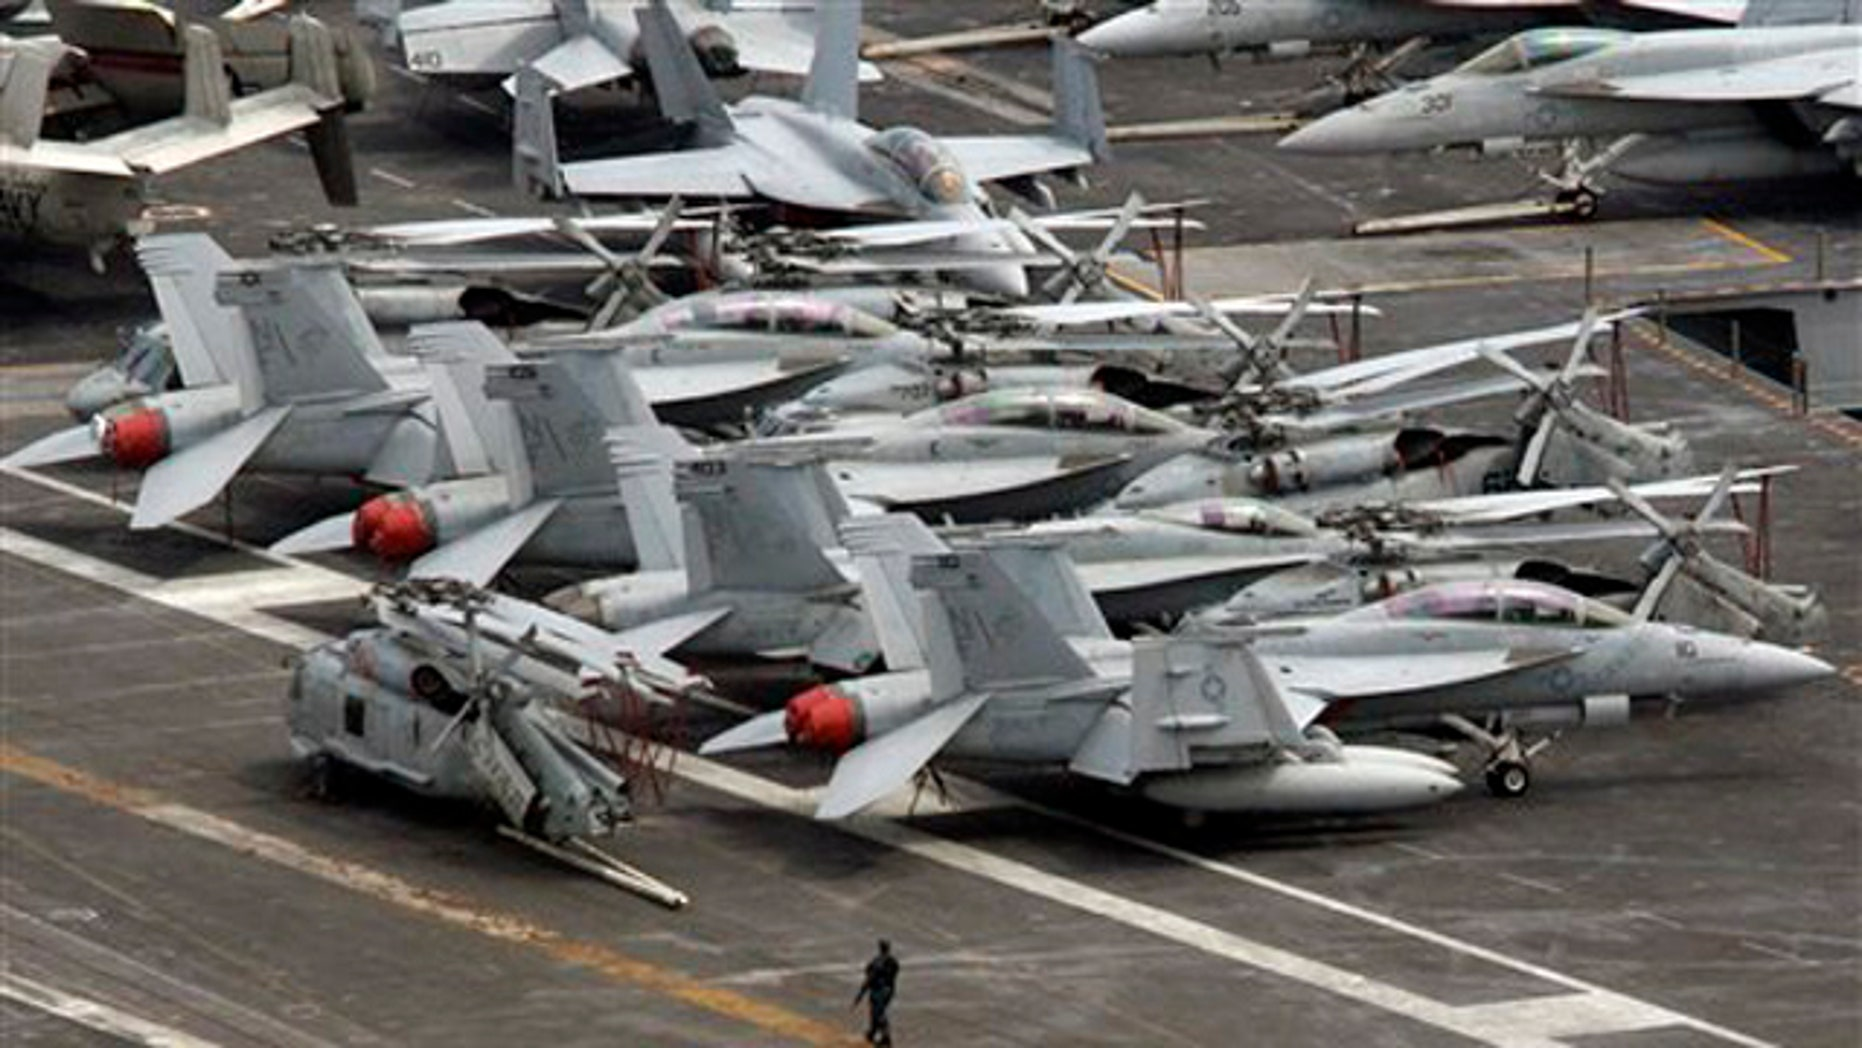 July 24, 2010: An armed military personnel stands near a flight line on the deck of U.S. nuclear-powered aircraft carrier USS George Washington at the Busan port in Busan, south of Seoul, South Korea.